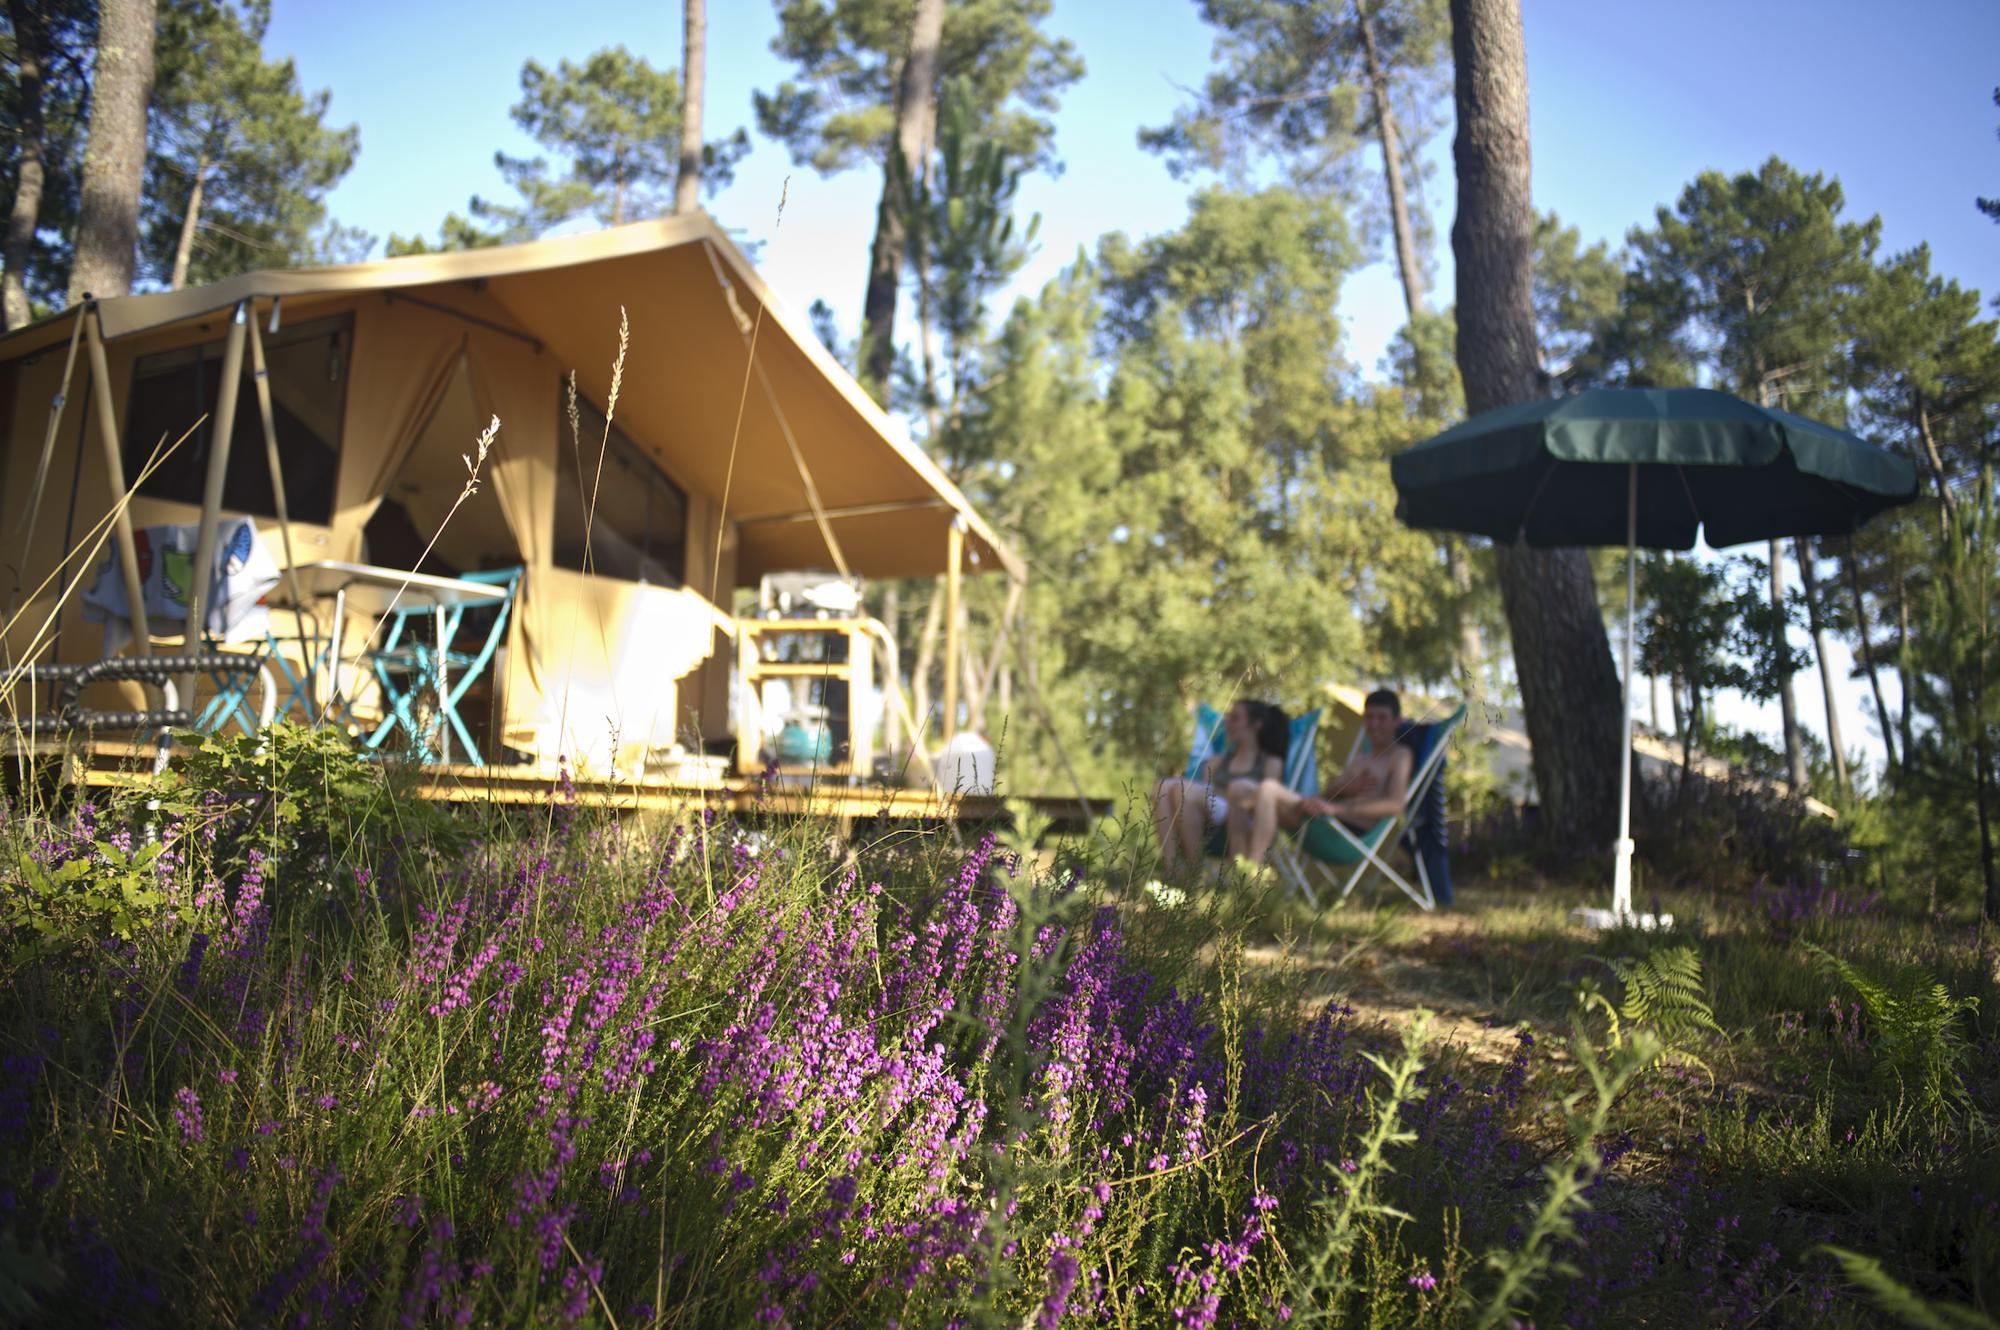 Campsites in Landes holidays at Glampingly